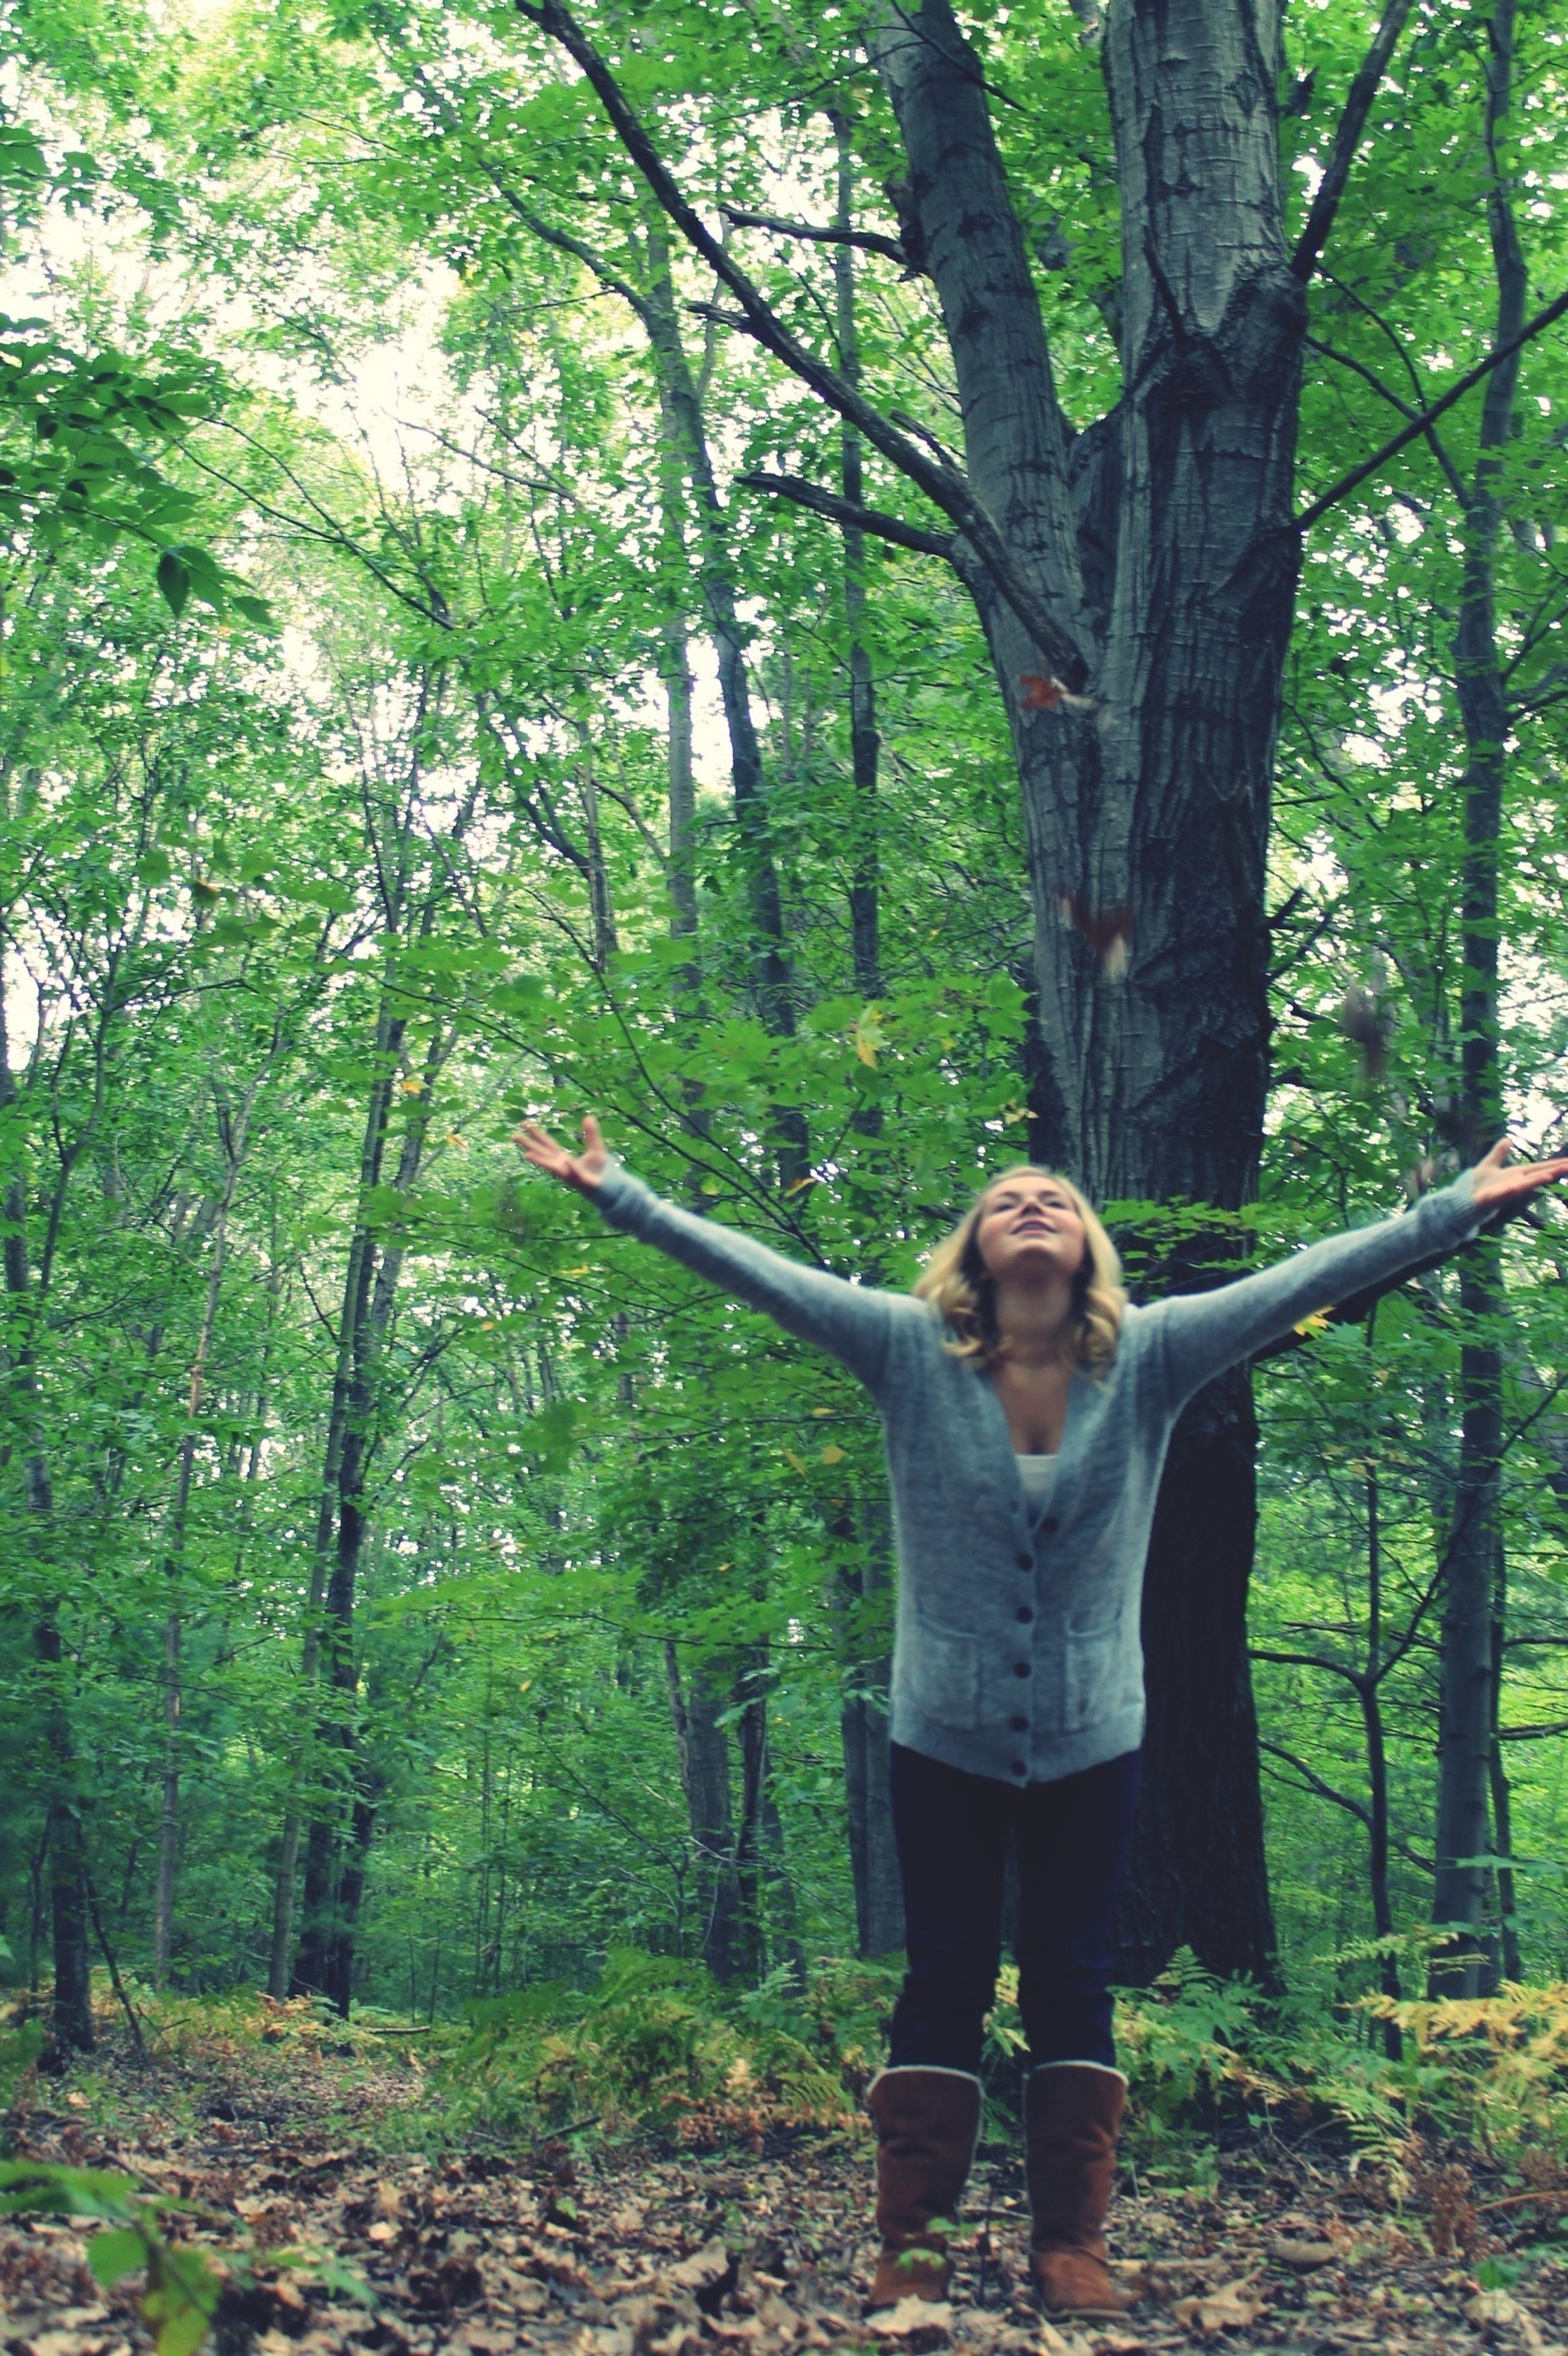 tree, young adult, casual clothing, forest, lifestyles, standing, person, leisure activity, young women, full length, tree trunk, growth, looking at camera, front view, portrait, woodland, three quarter length, nature